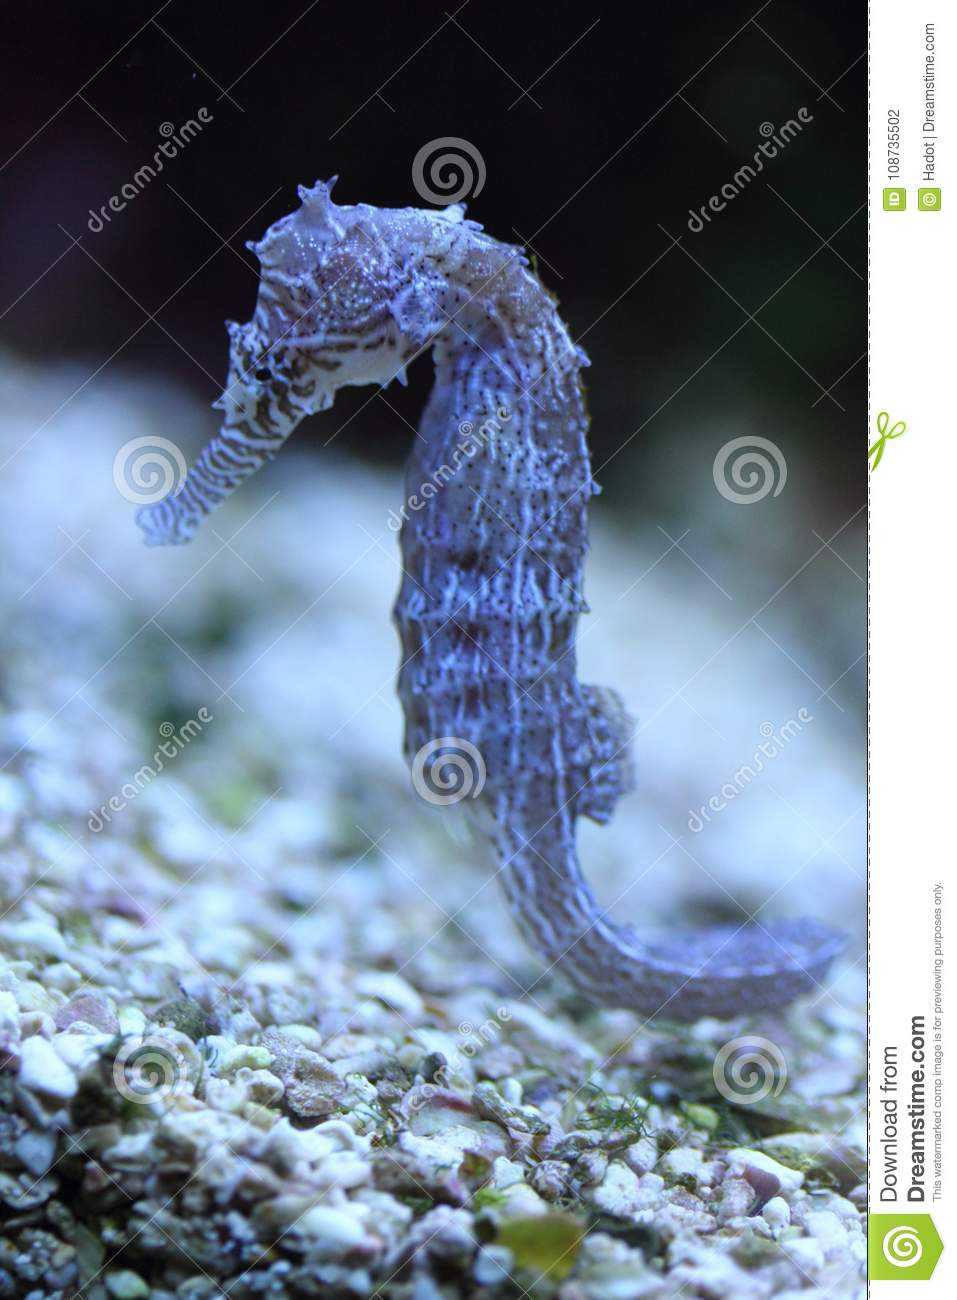 Seahorse Hippocampus Stock Photo Image Of Ancient Hippocampus 108735502